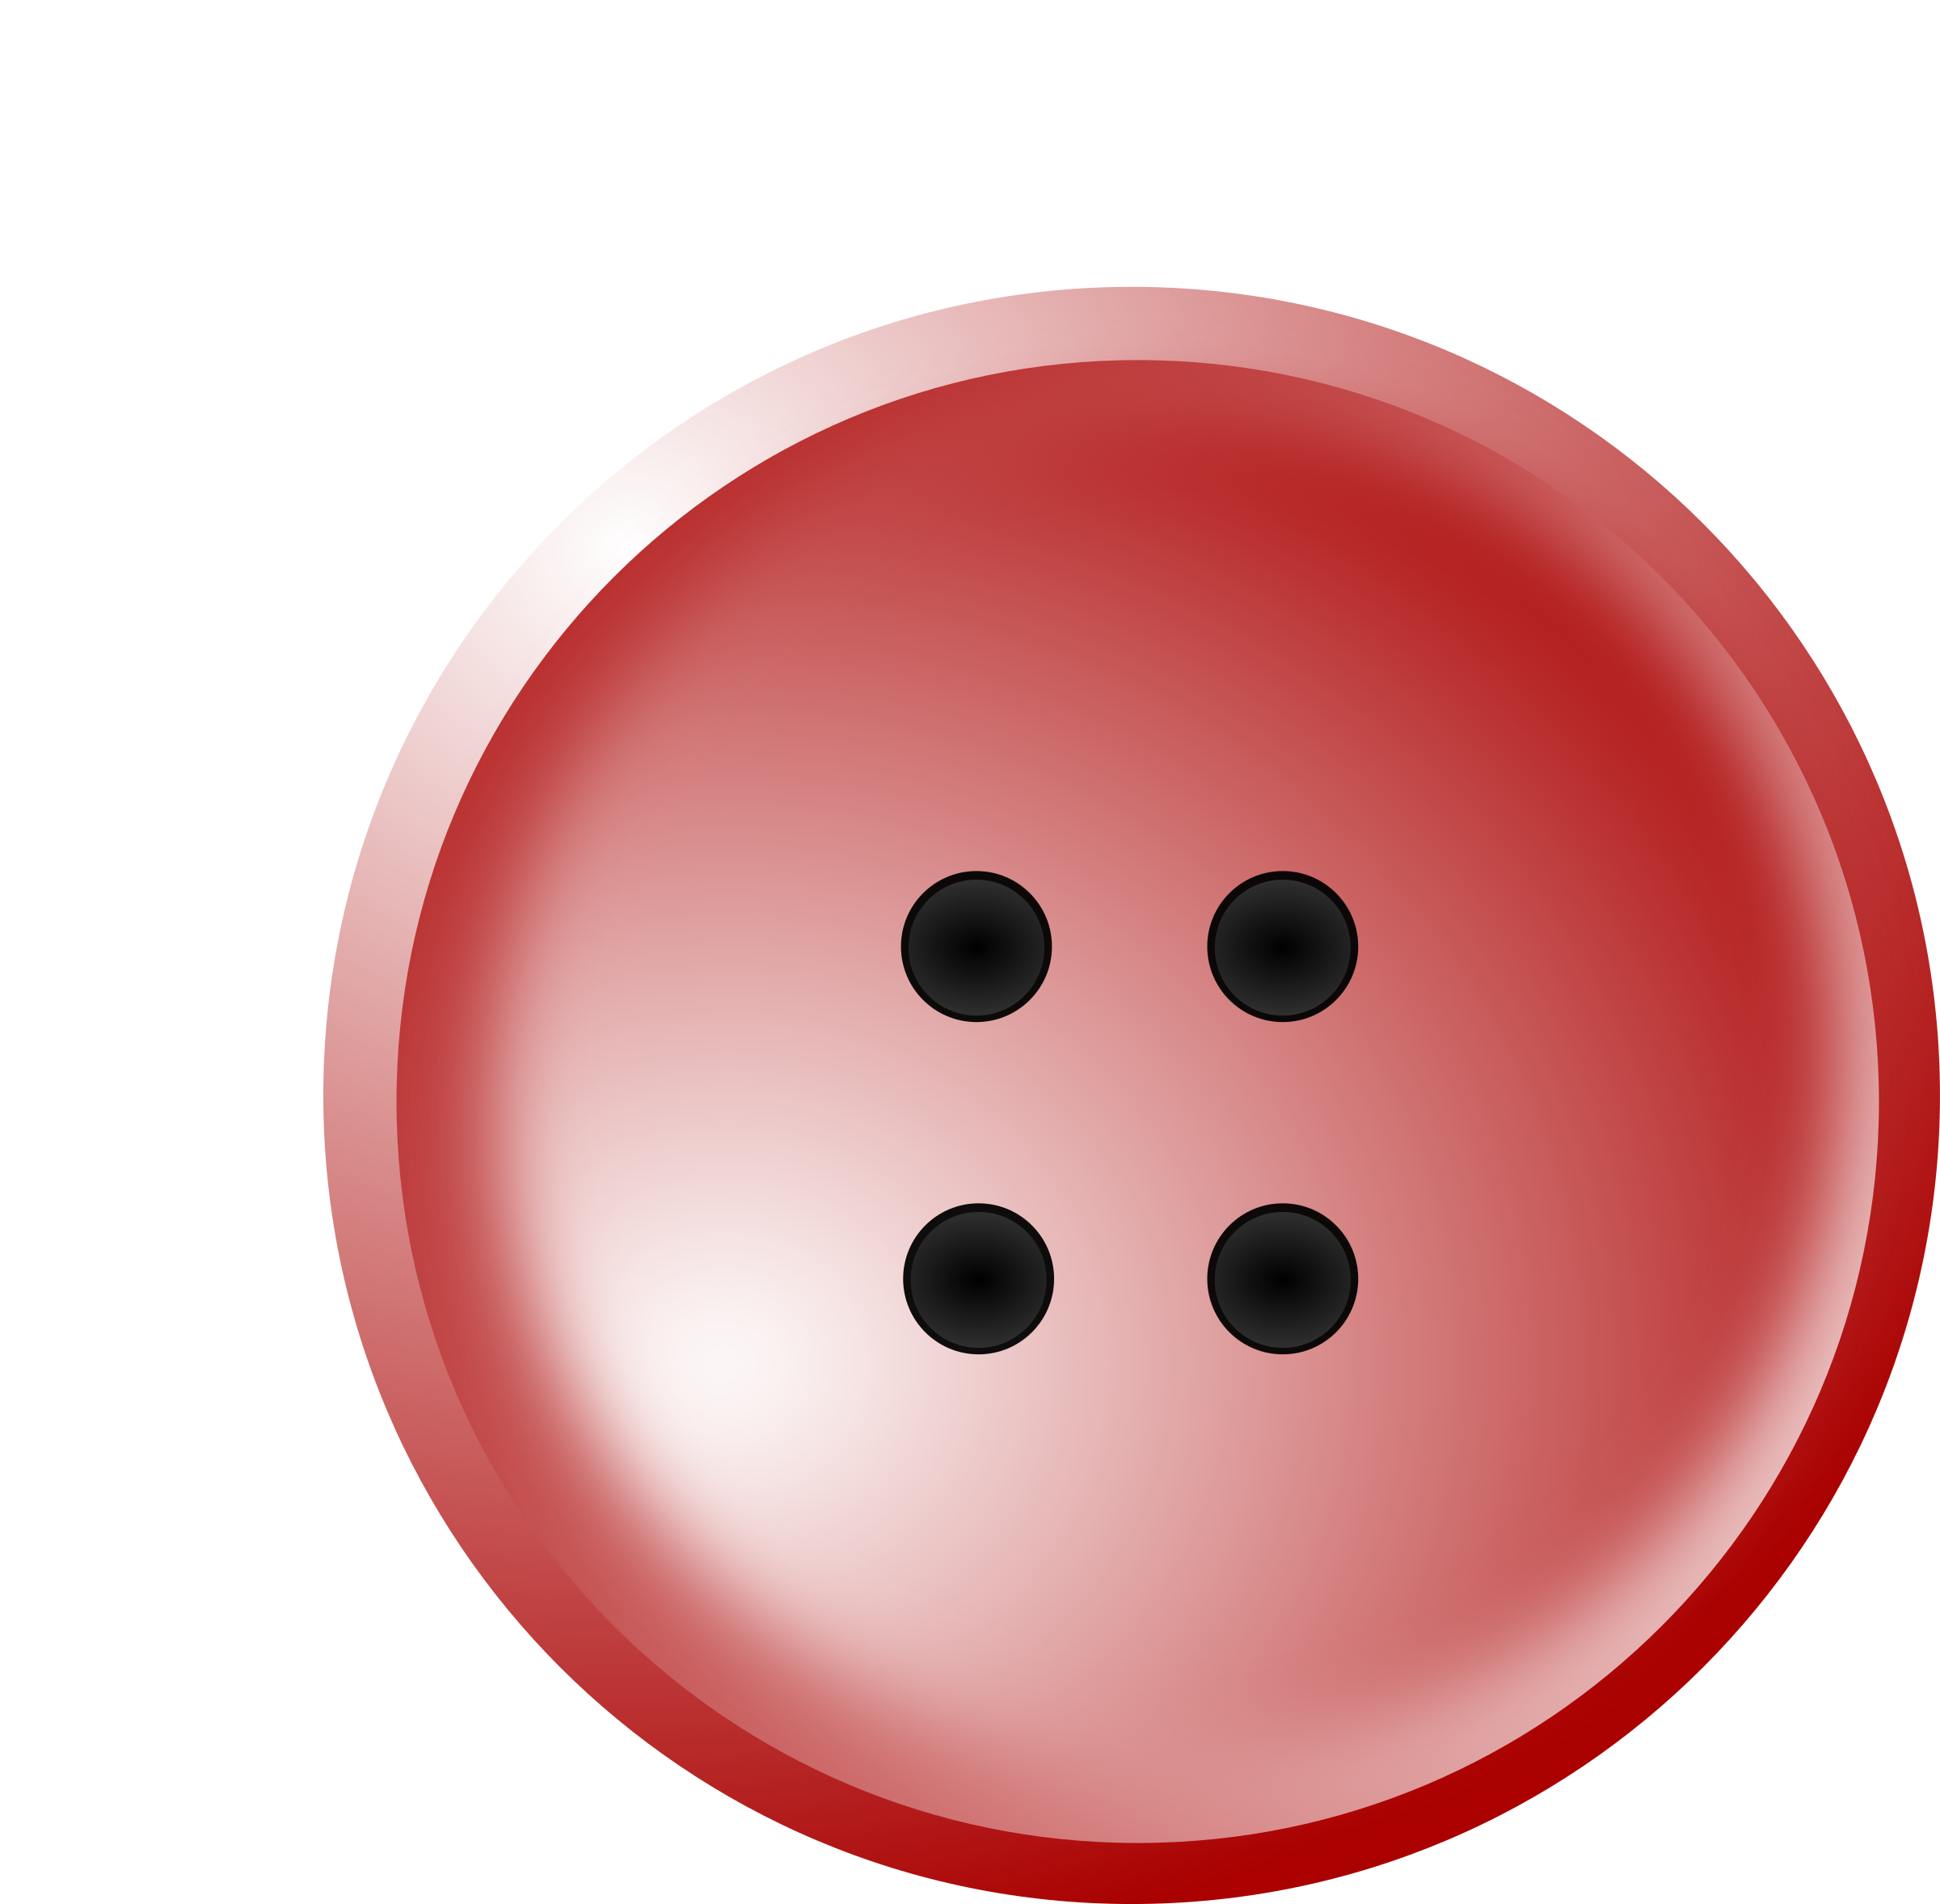 Red button big image. Shirt clipart buttoned shirt banner royalty free download